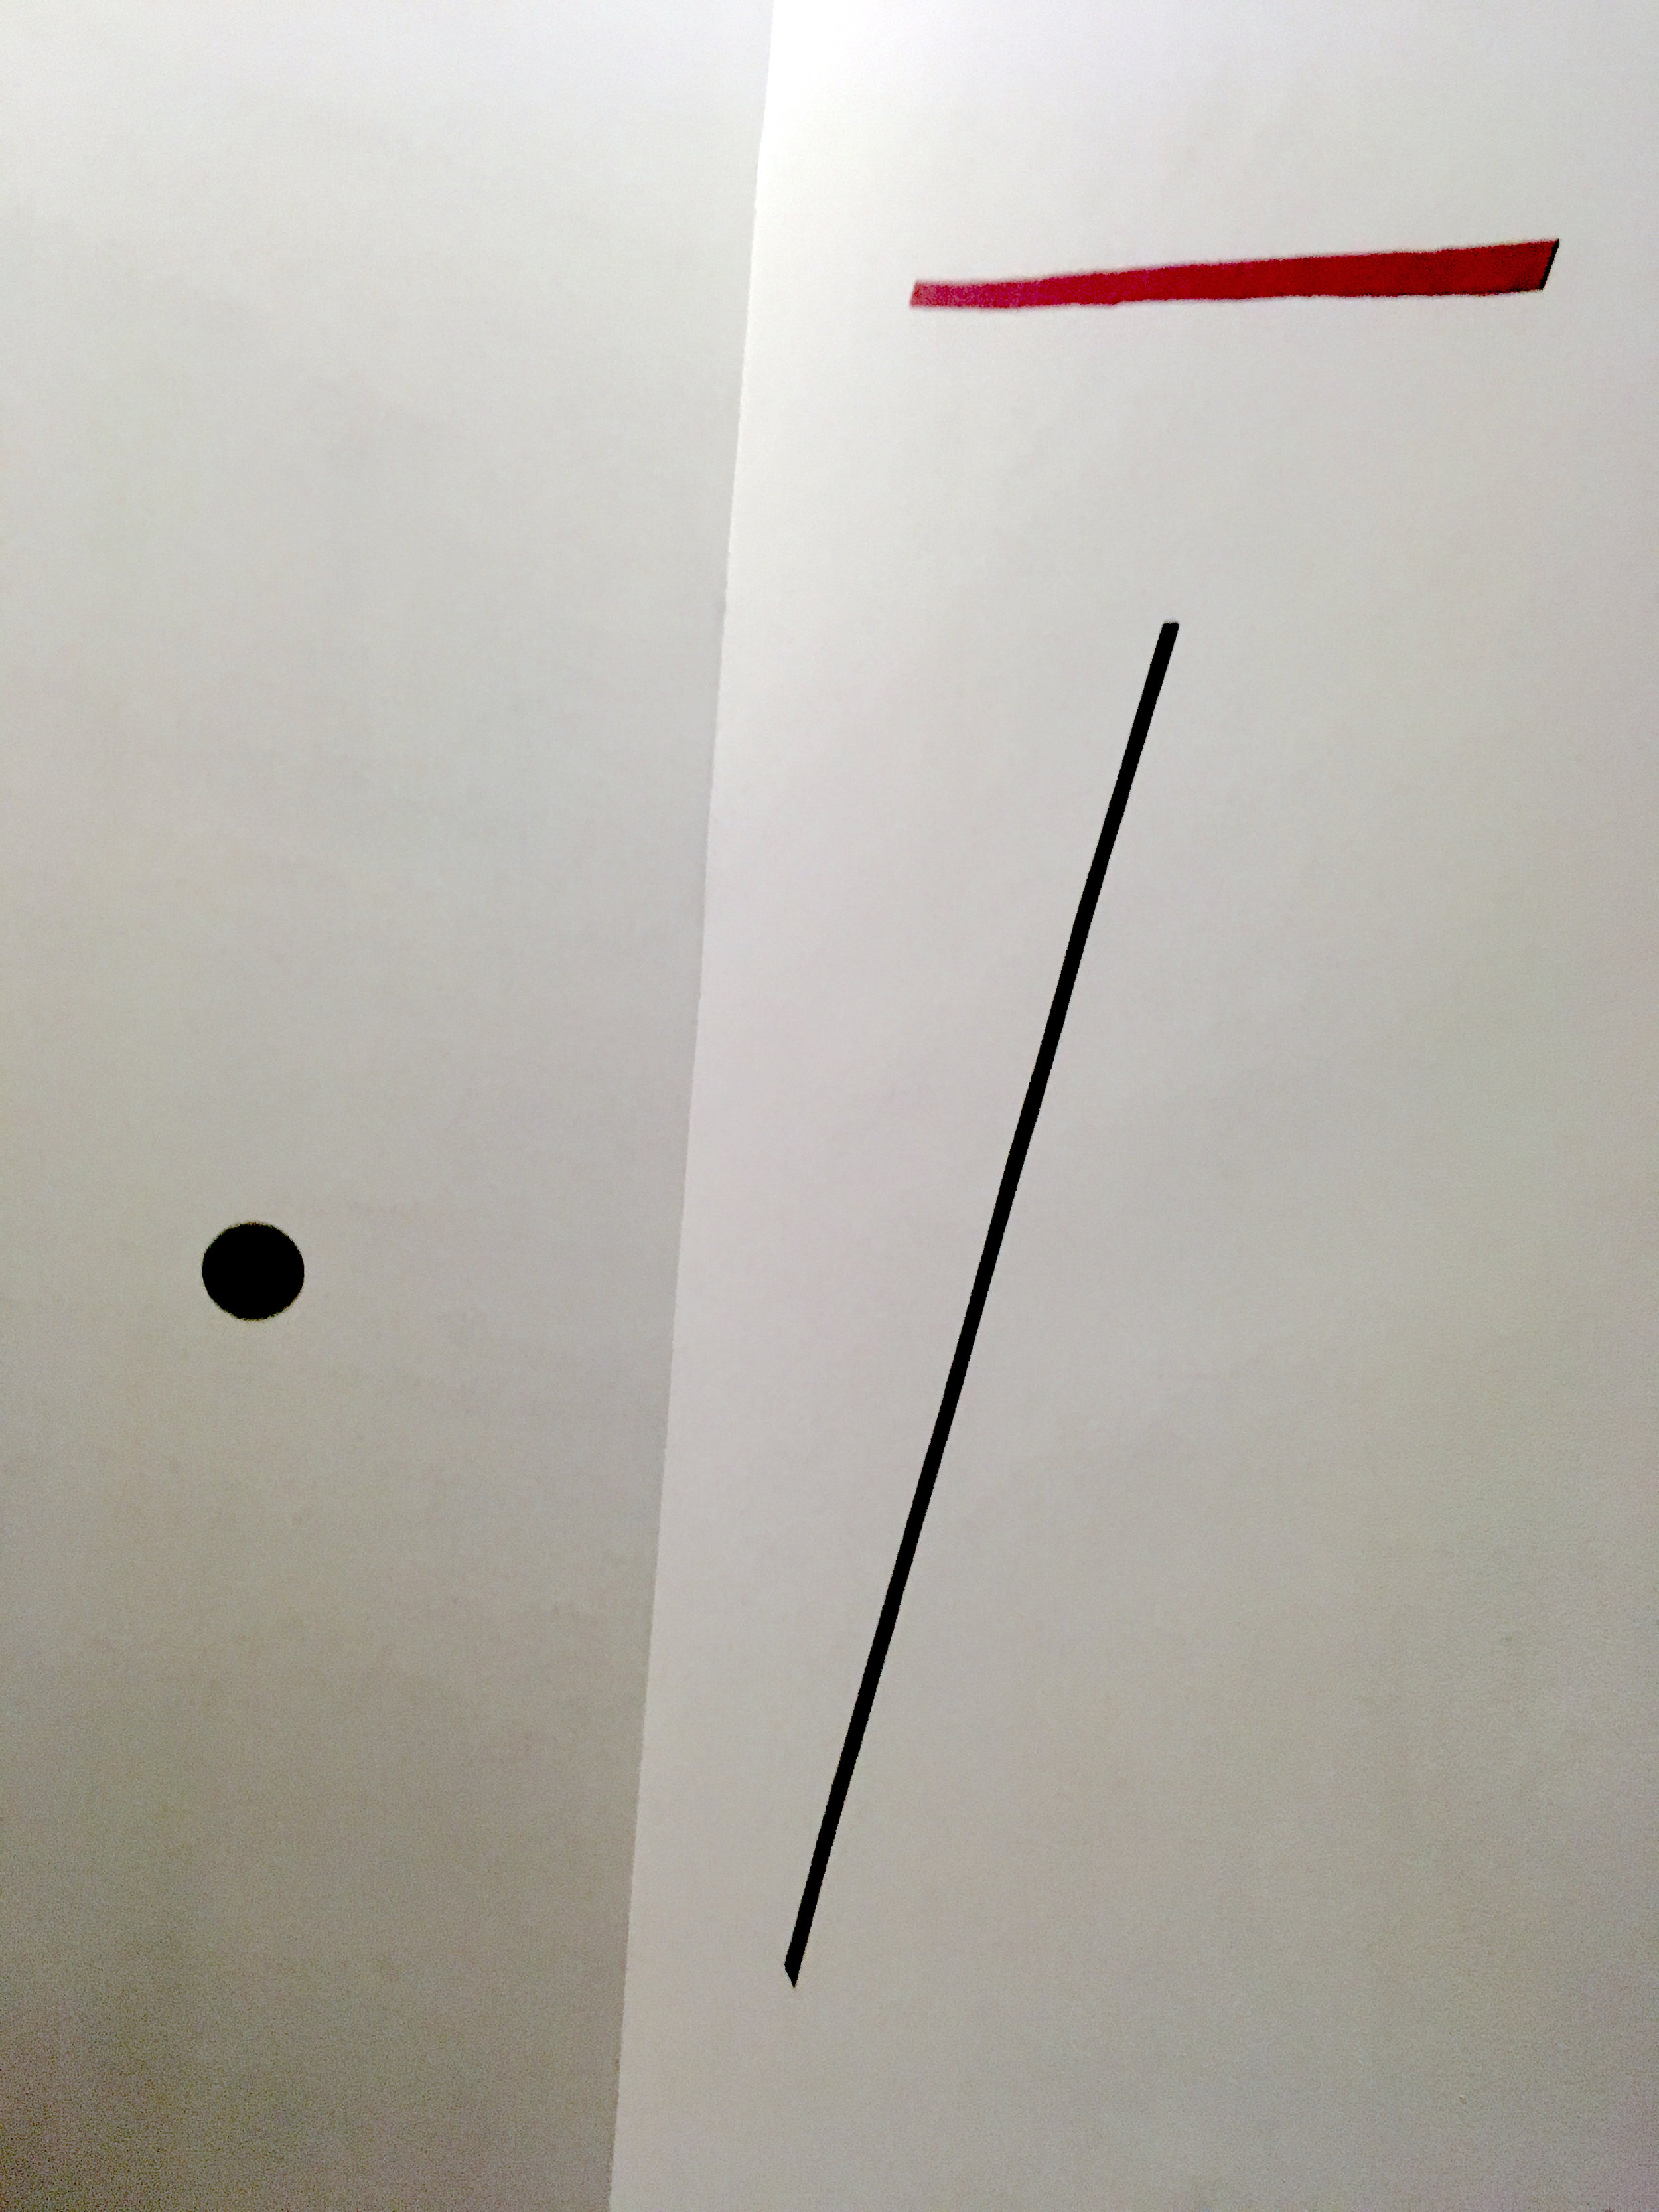 New Museum Trigger, Gender as a Tool and a Weapon This Corner, 2017